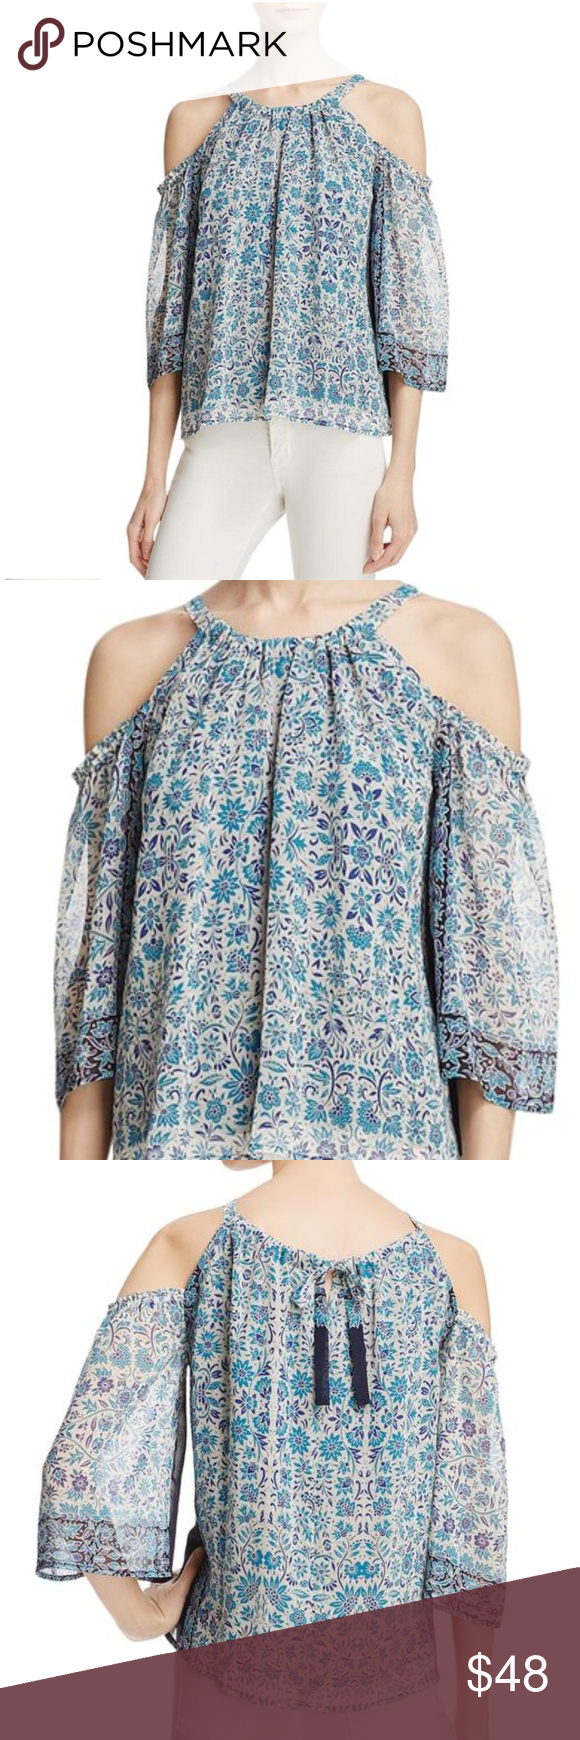 55864567cd592b Beltaine Cold Shoulder Blouse Beltaine Cold Shoulder Blouse Size Medium  Serenely styled in a breezy silhouette